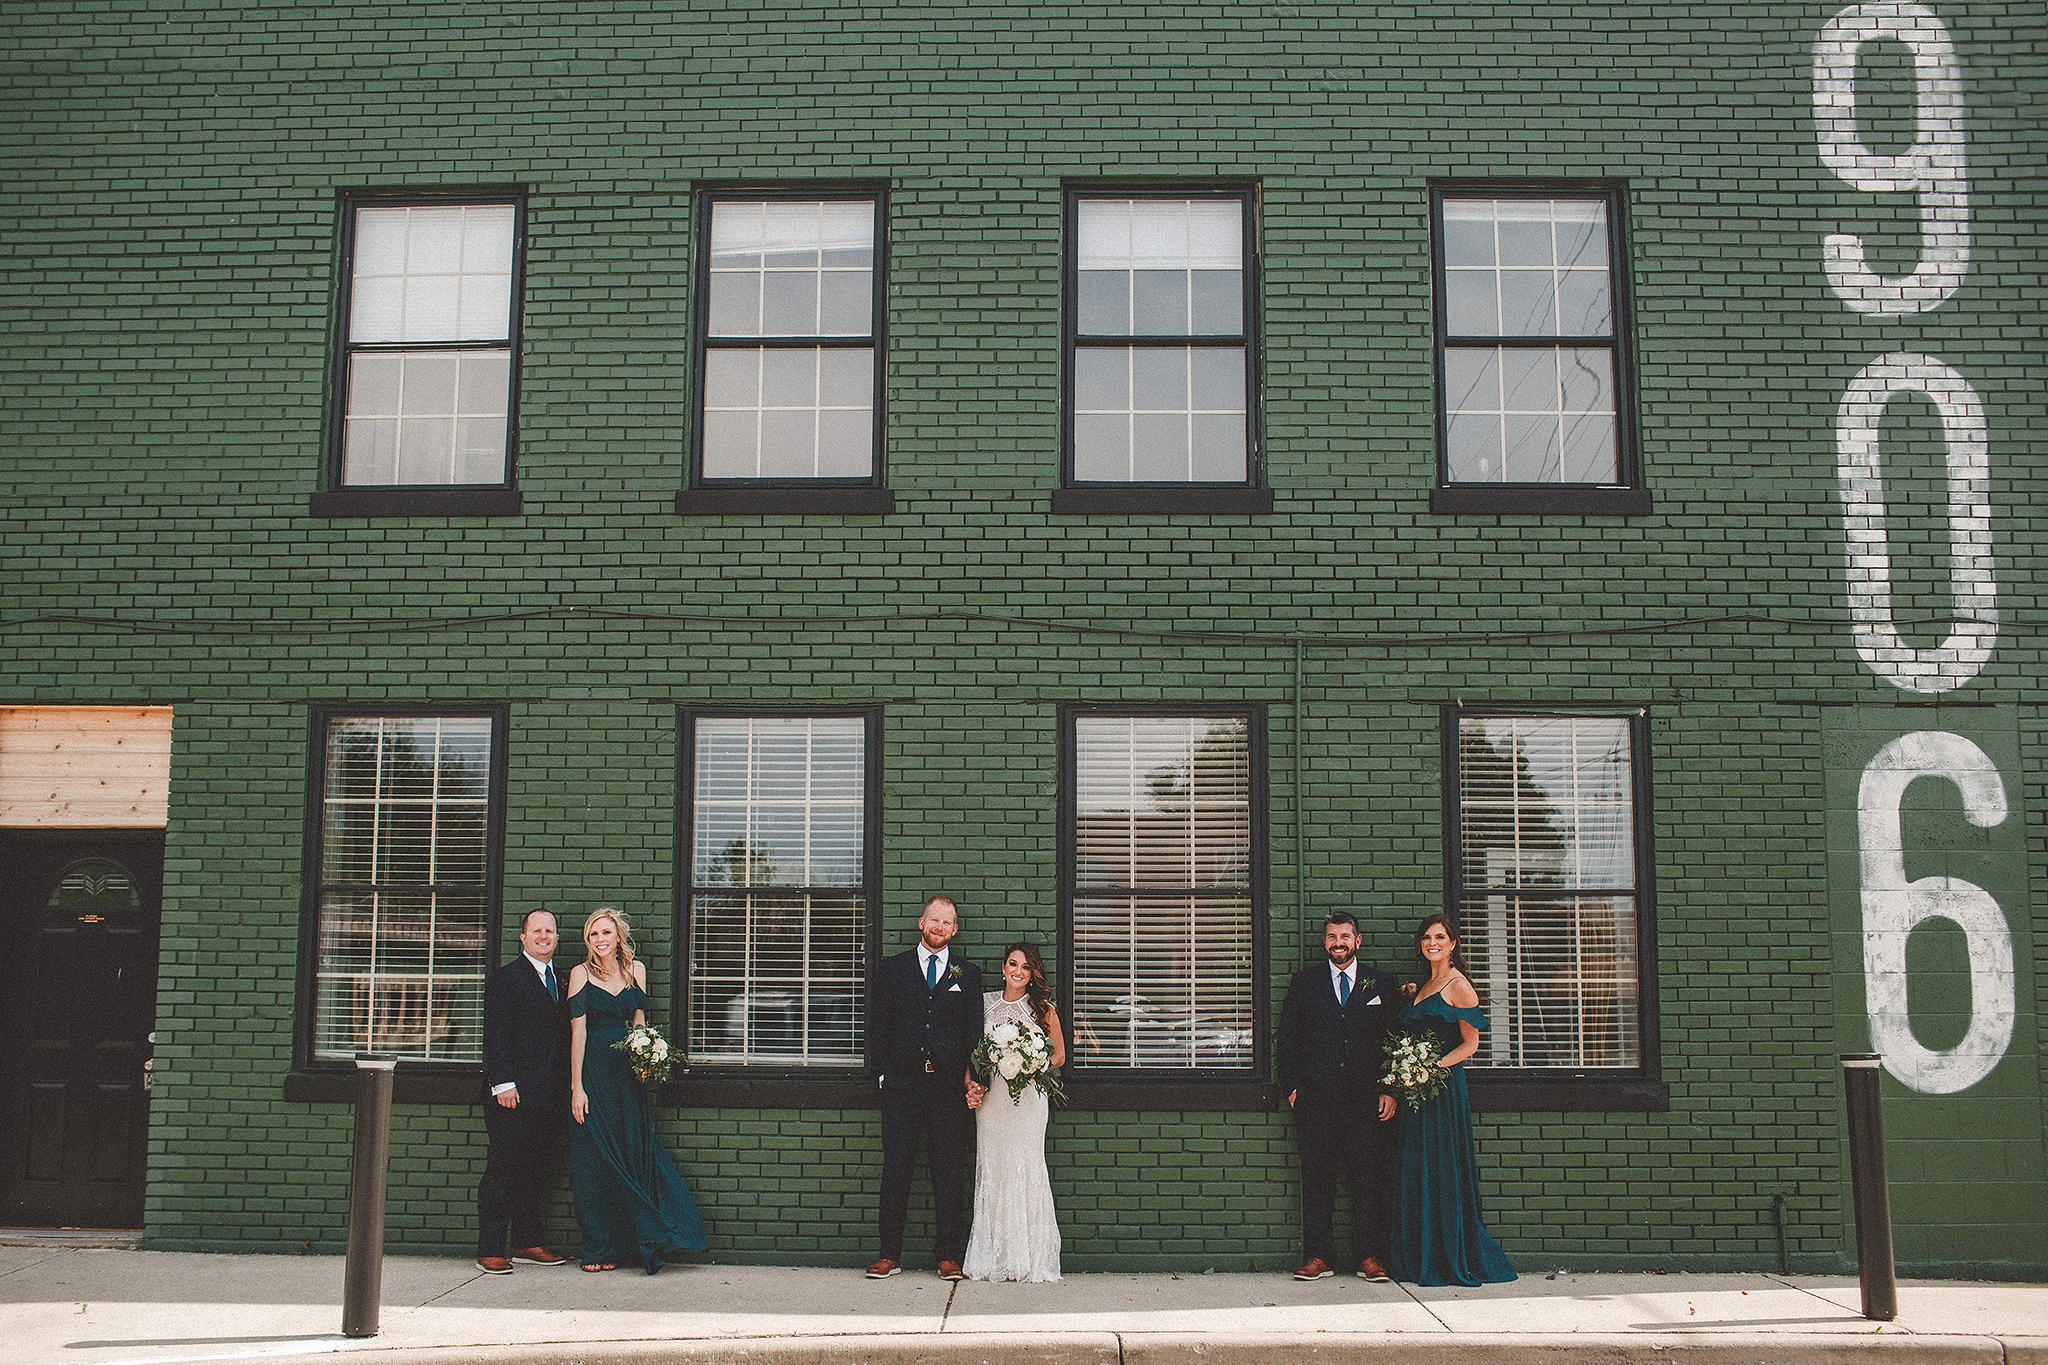 wedding party in front of green brick wall | the ivy house milwaukee wedding photographer | chrissy deming